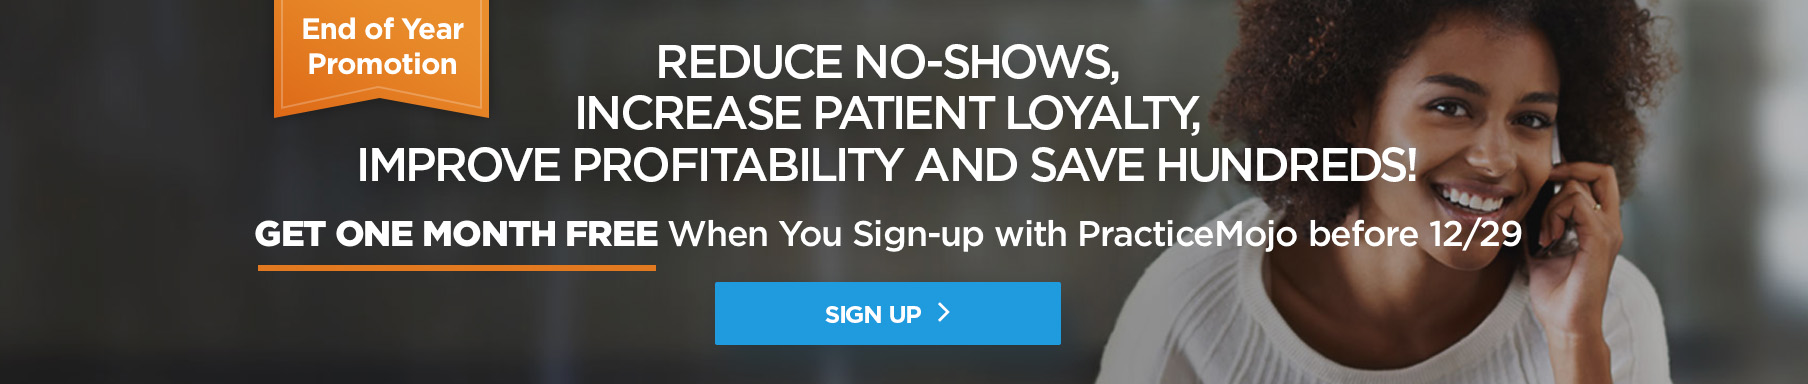 practicemojo-Patient-Loyalty-Is-Great